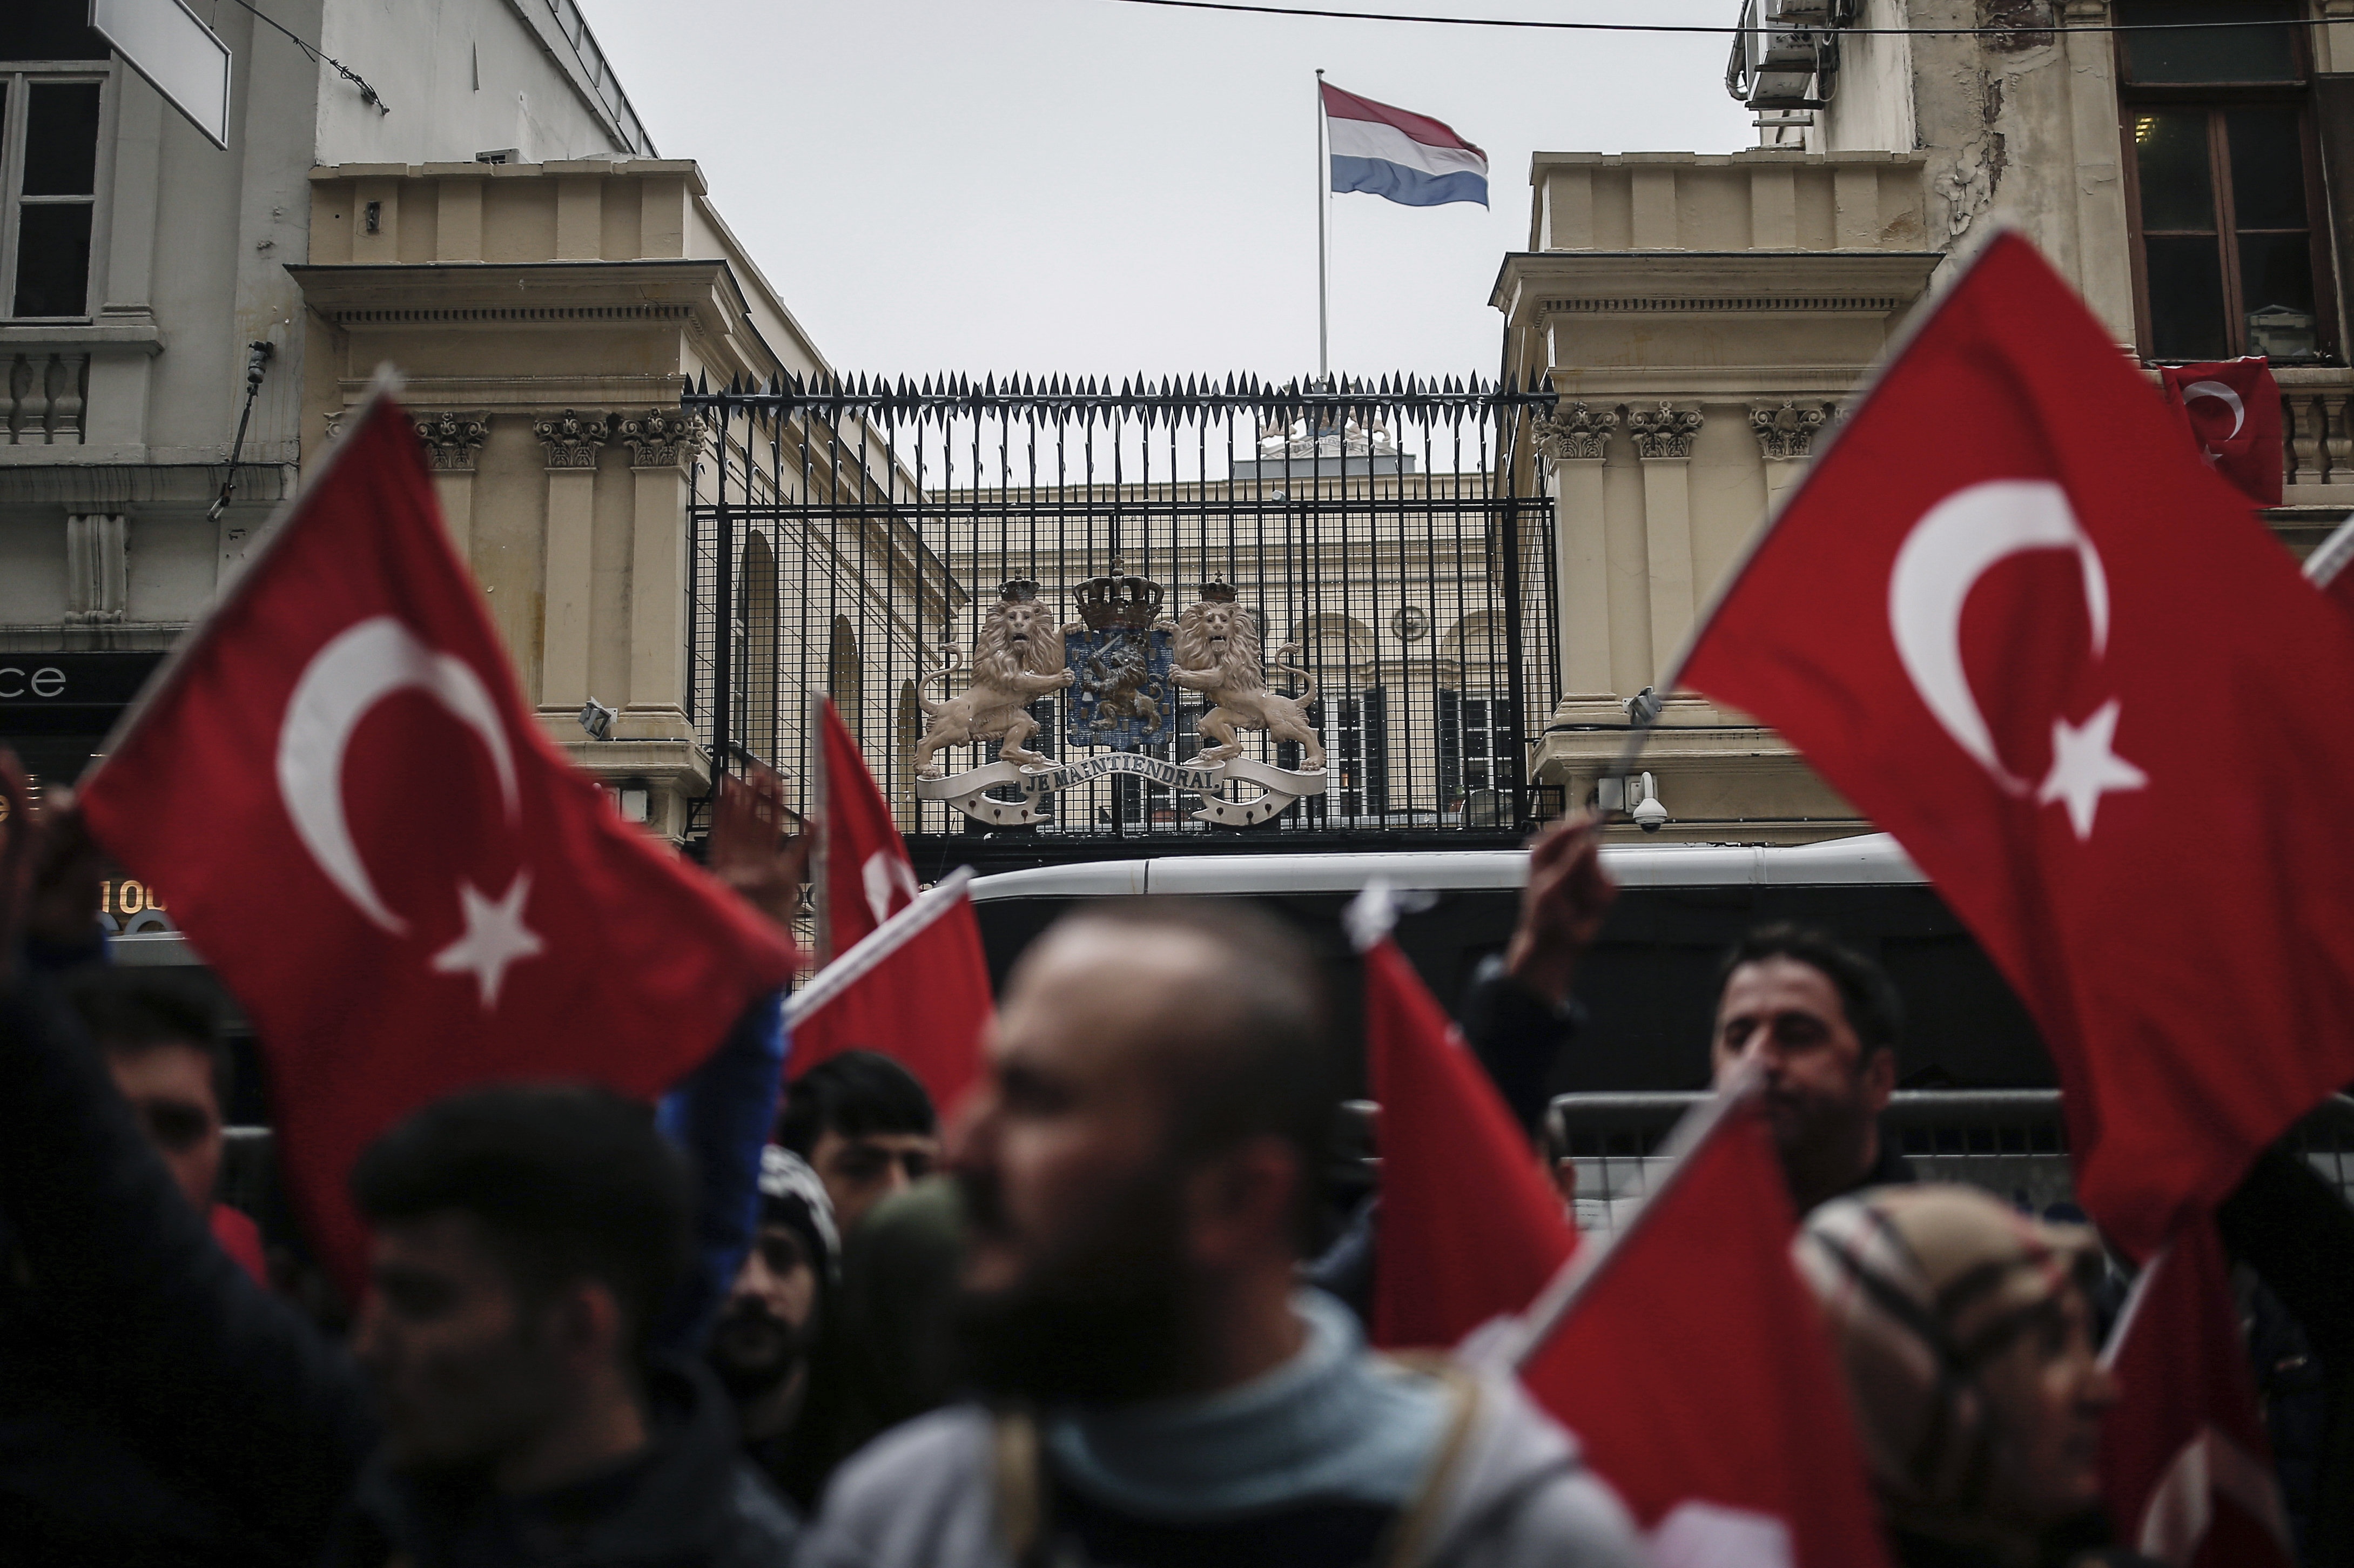 A group of Turks protest outside the Dutch consulate in Istanbul, Sunday, March 12, 2017